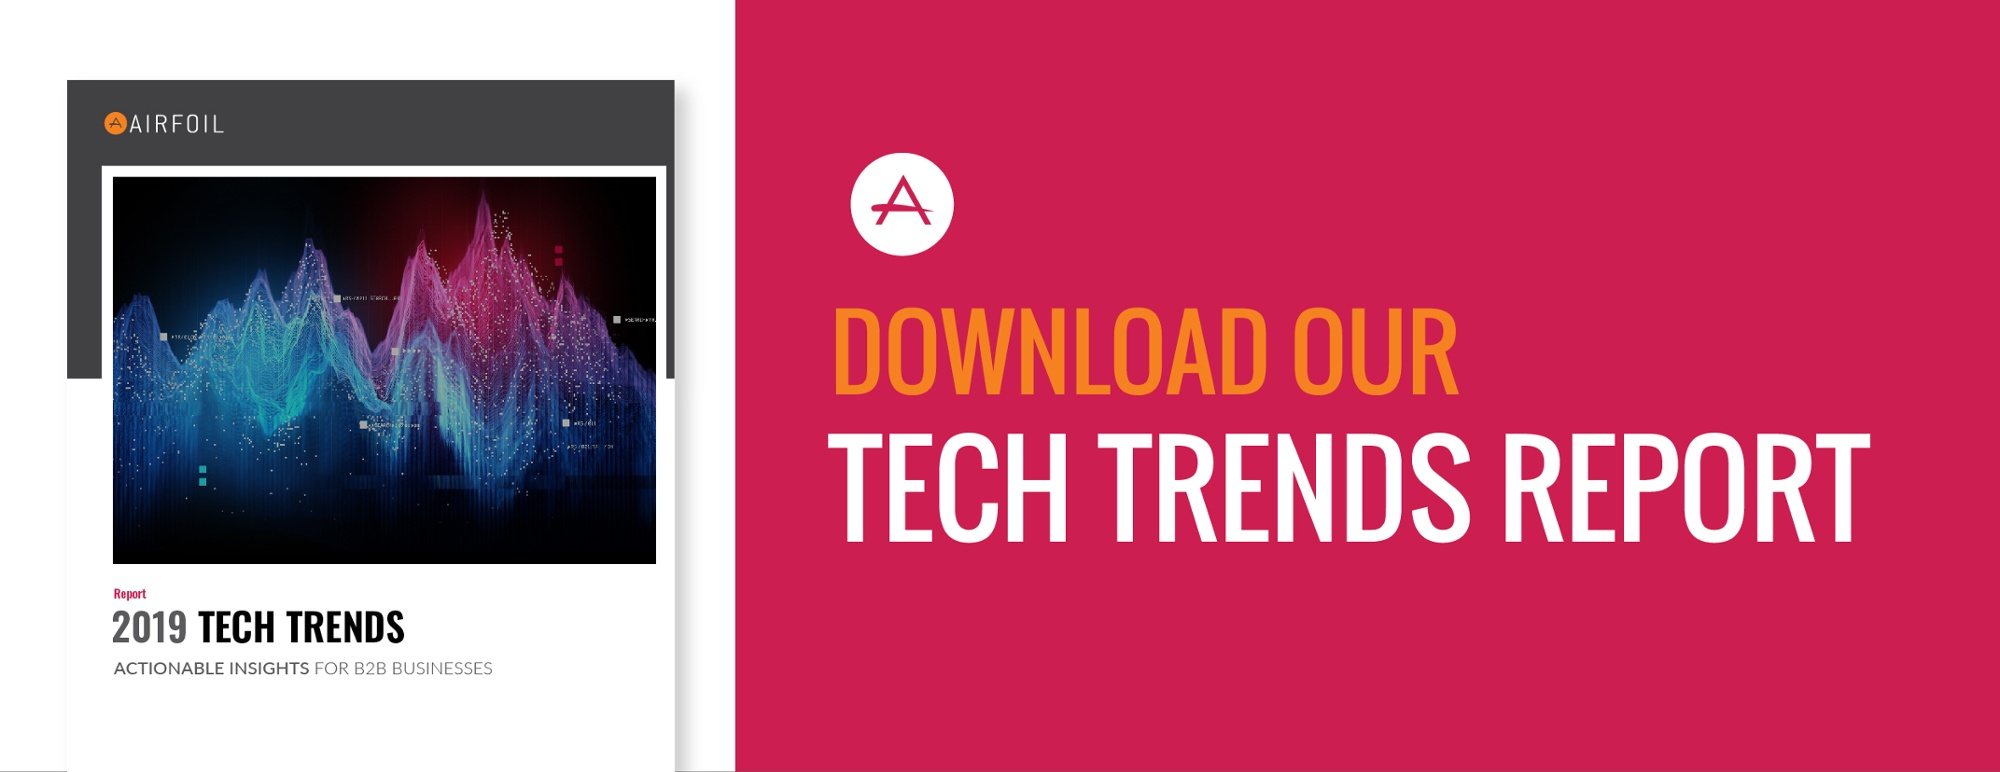 2019 Tech Trends Report